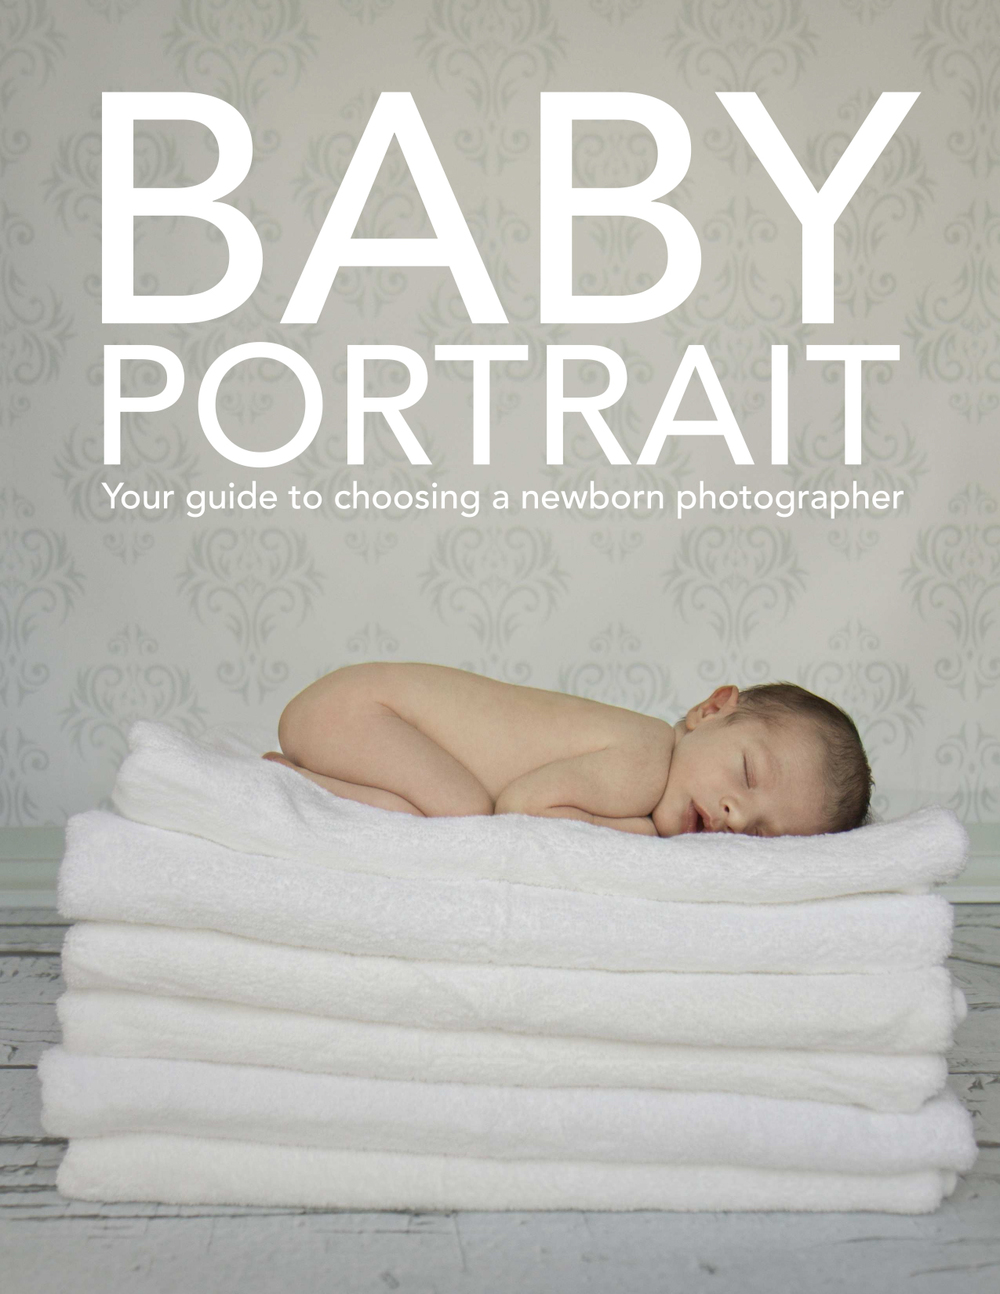 Baby-Portrait-Your-Guide-To-Choosing-A-Newborn-Photographer-1.jpg